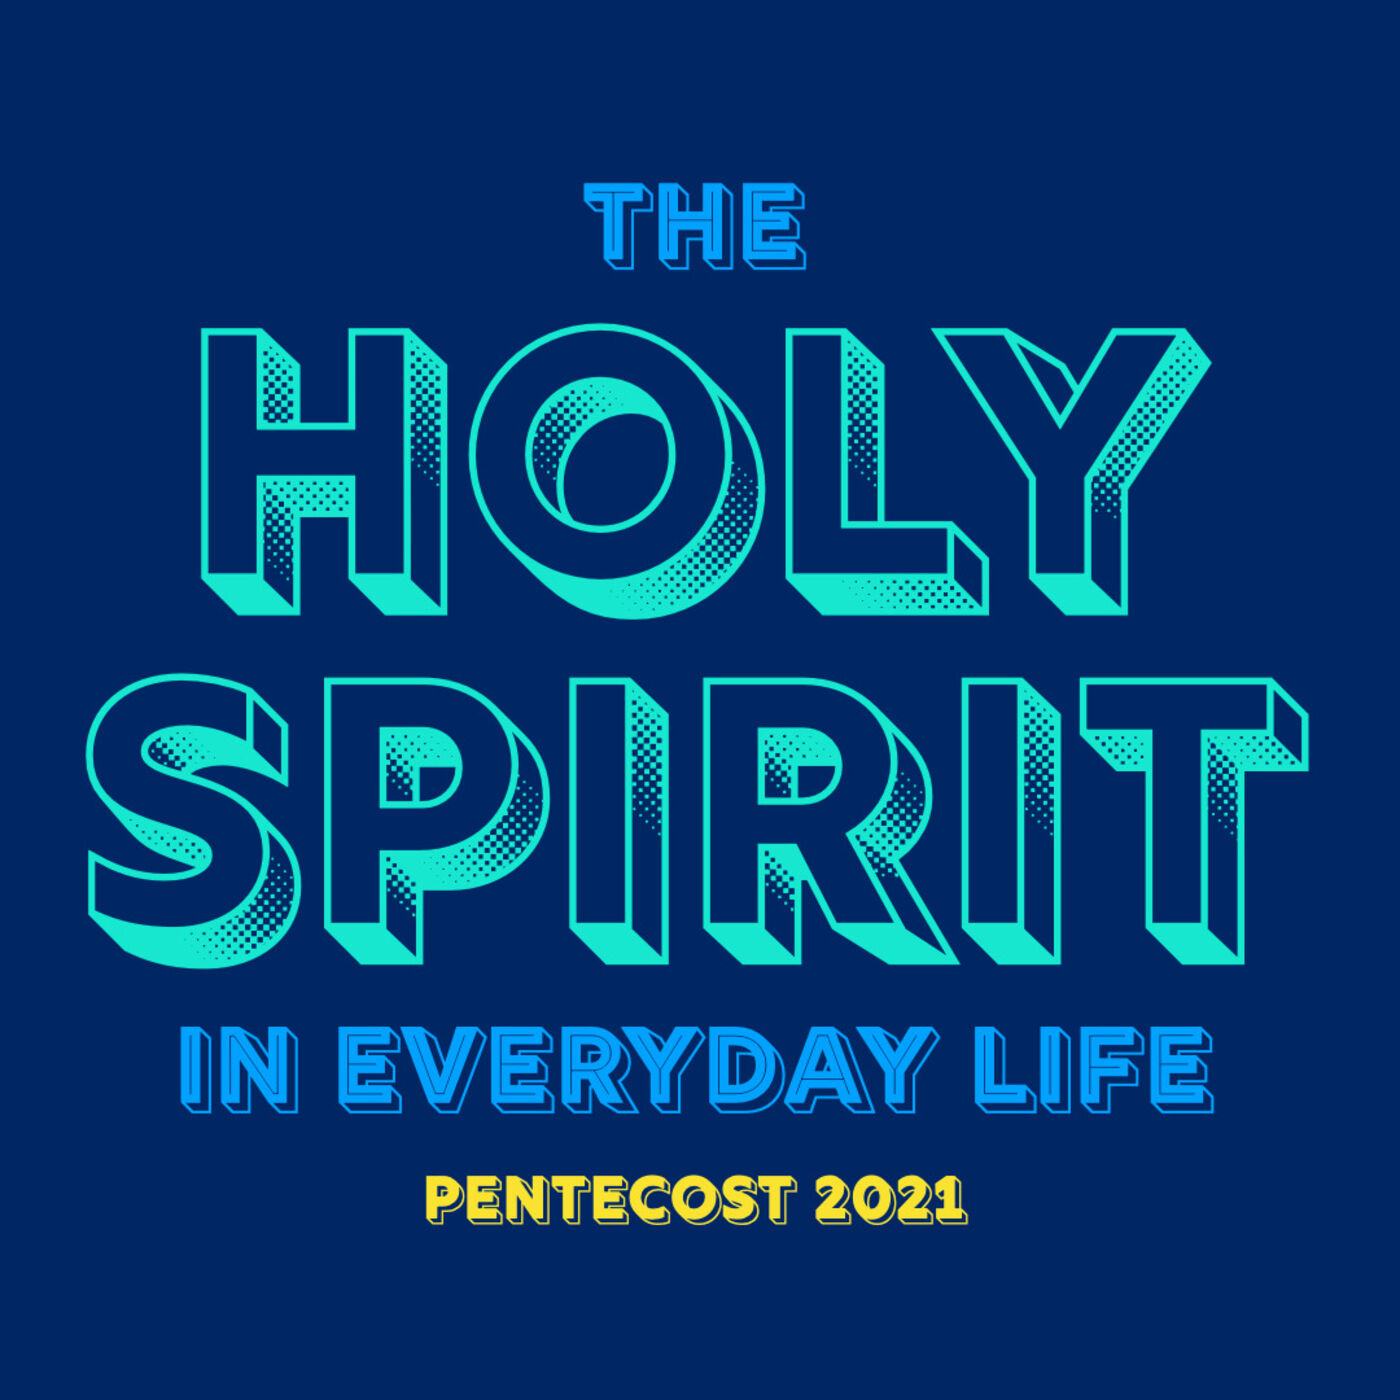 The Holy Spirit in Everyday Life   1 Thessalonians 1:2-6 » June 27, 2021